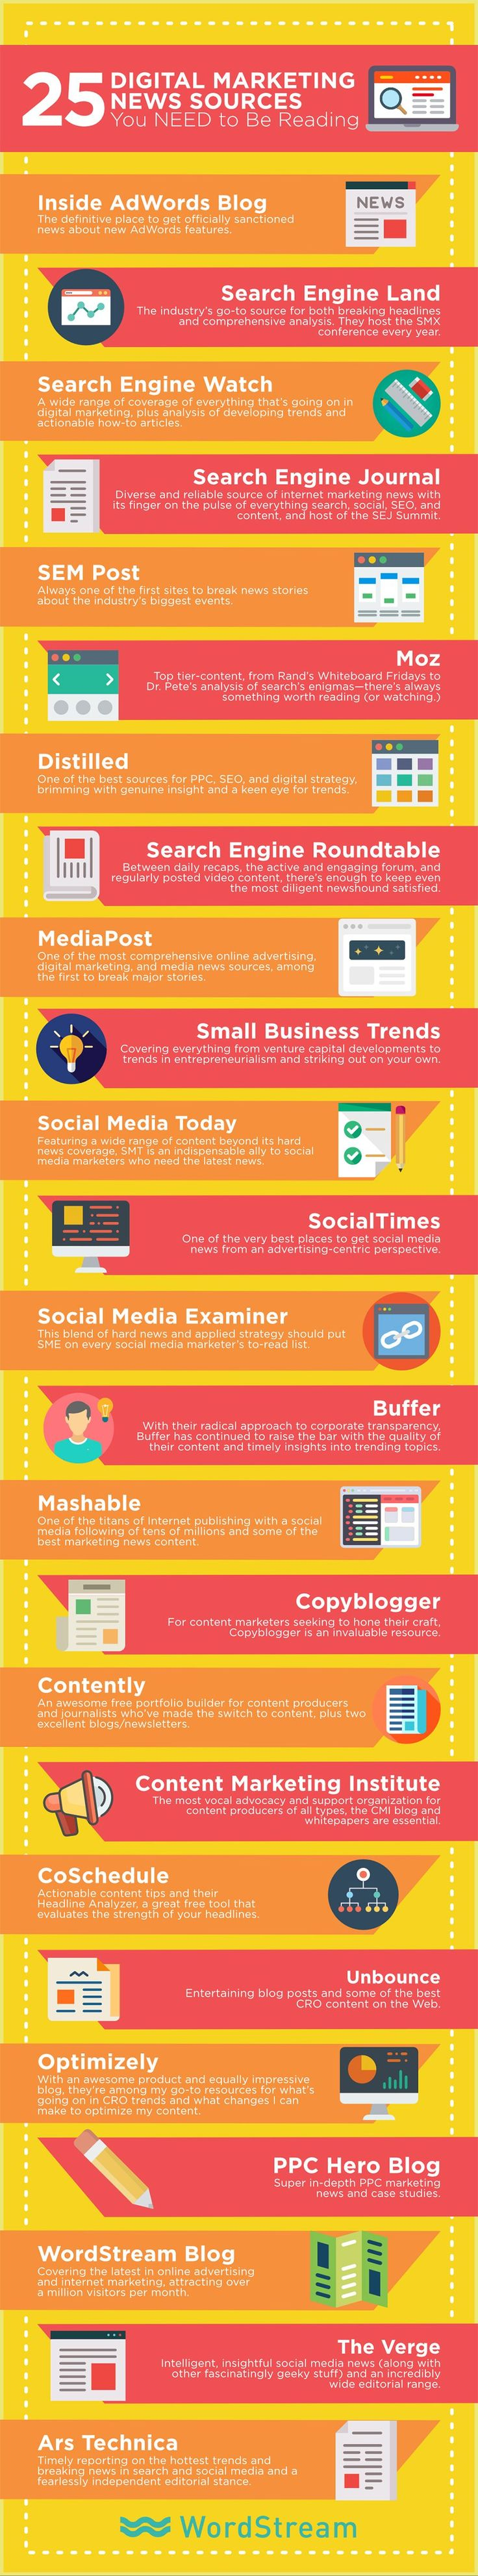 Want to Learn Digital Marketing? 25 Blogs You Need to Follow [Infographic]